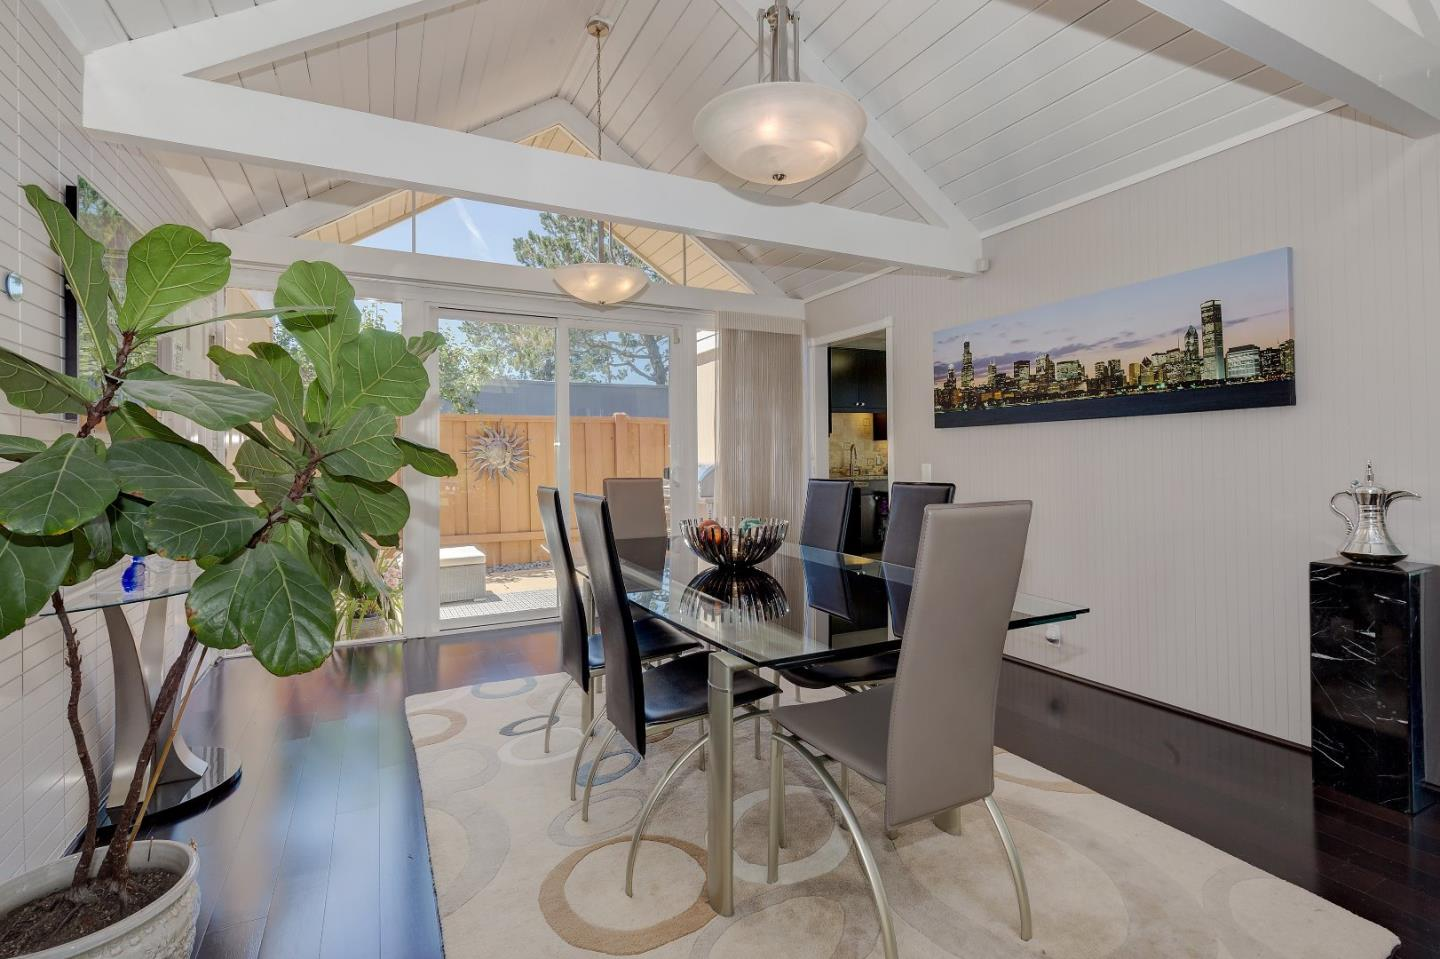 Additional photo for property listing at 837 Constitution Dr  FOSTER CITY, CALIFORNIA 94404